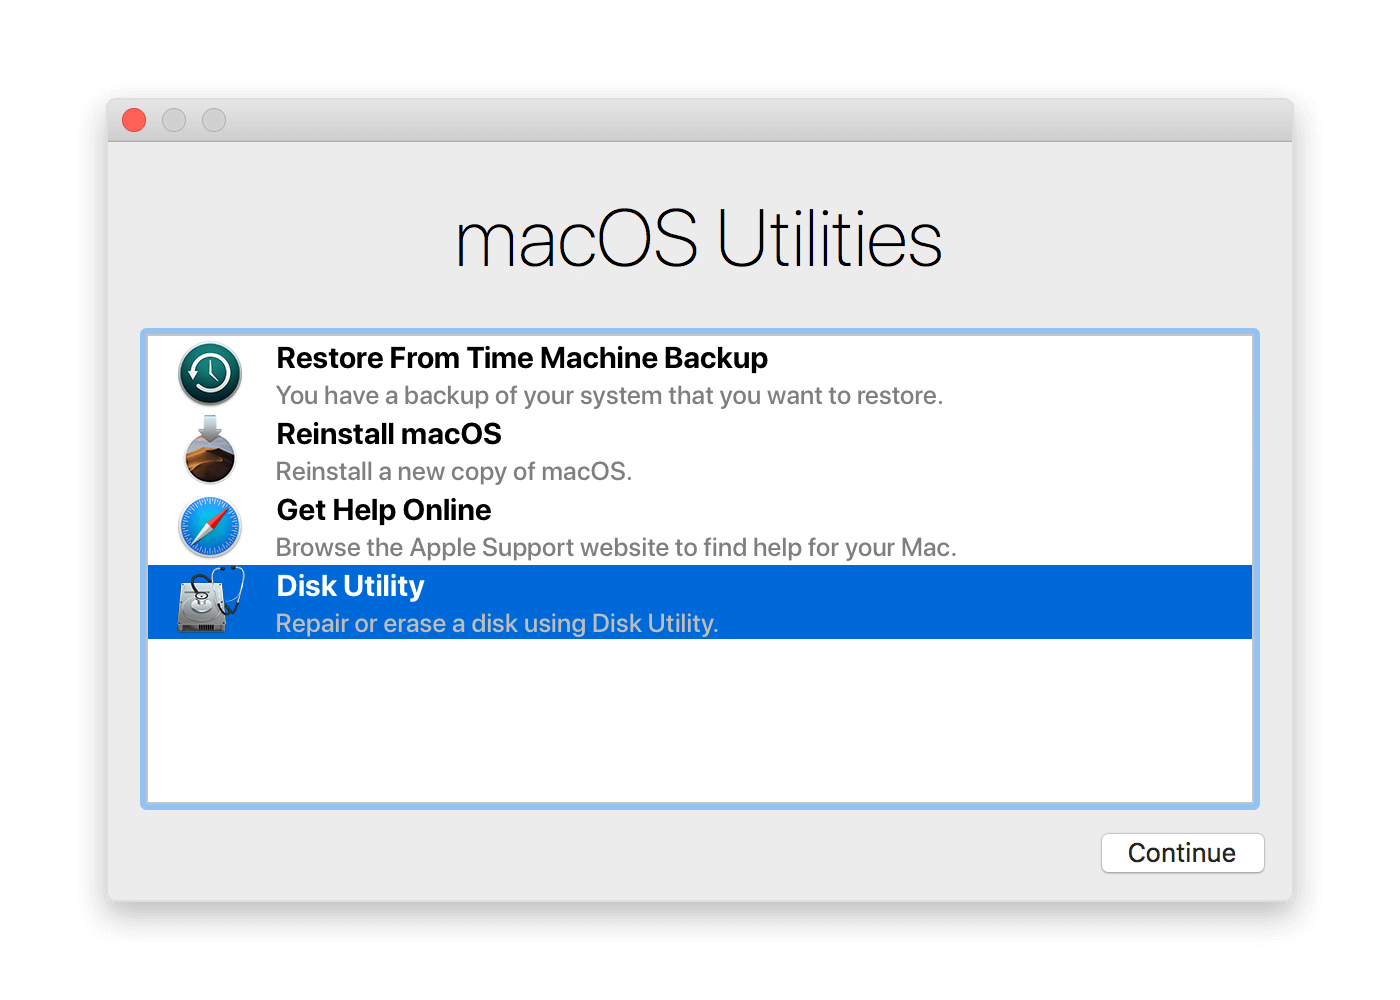 Disk Utility selected in MacOS Utilities window